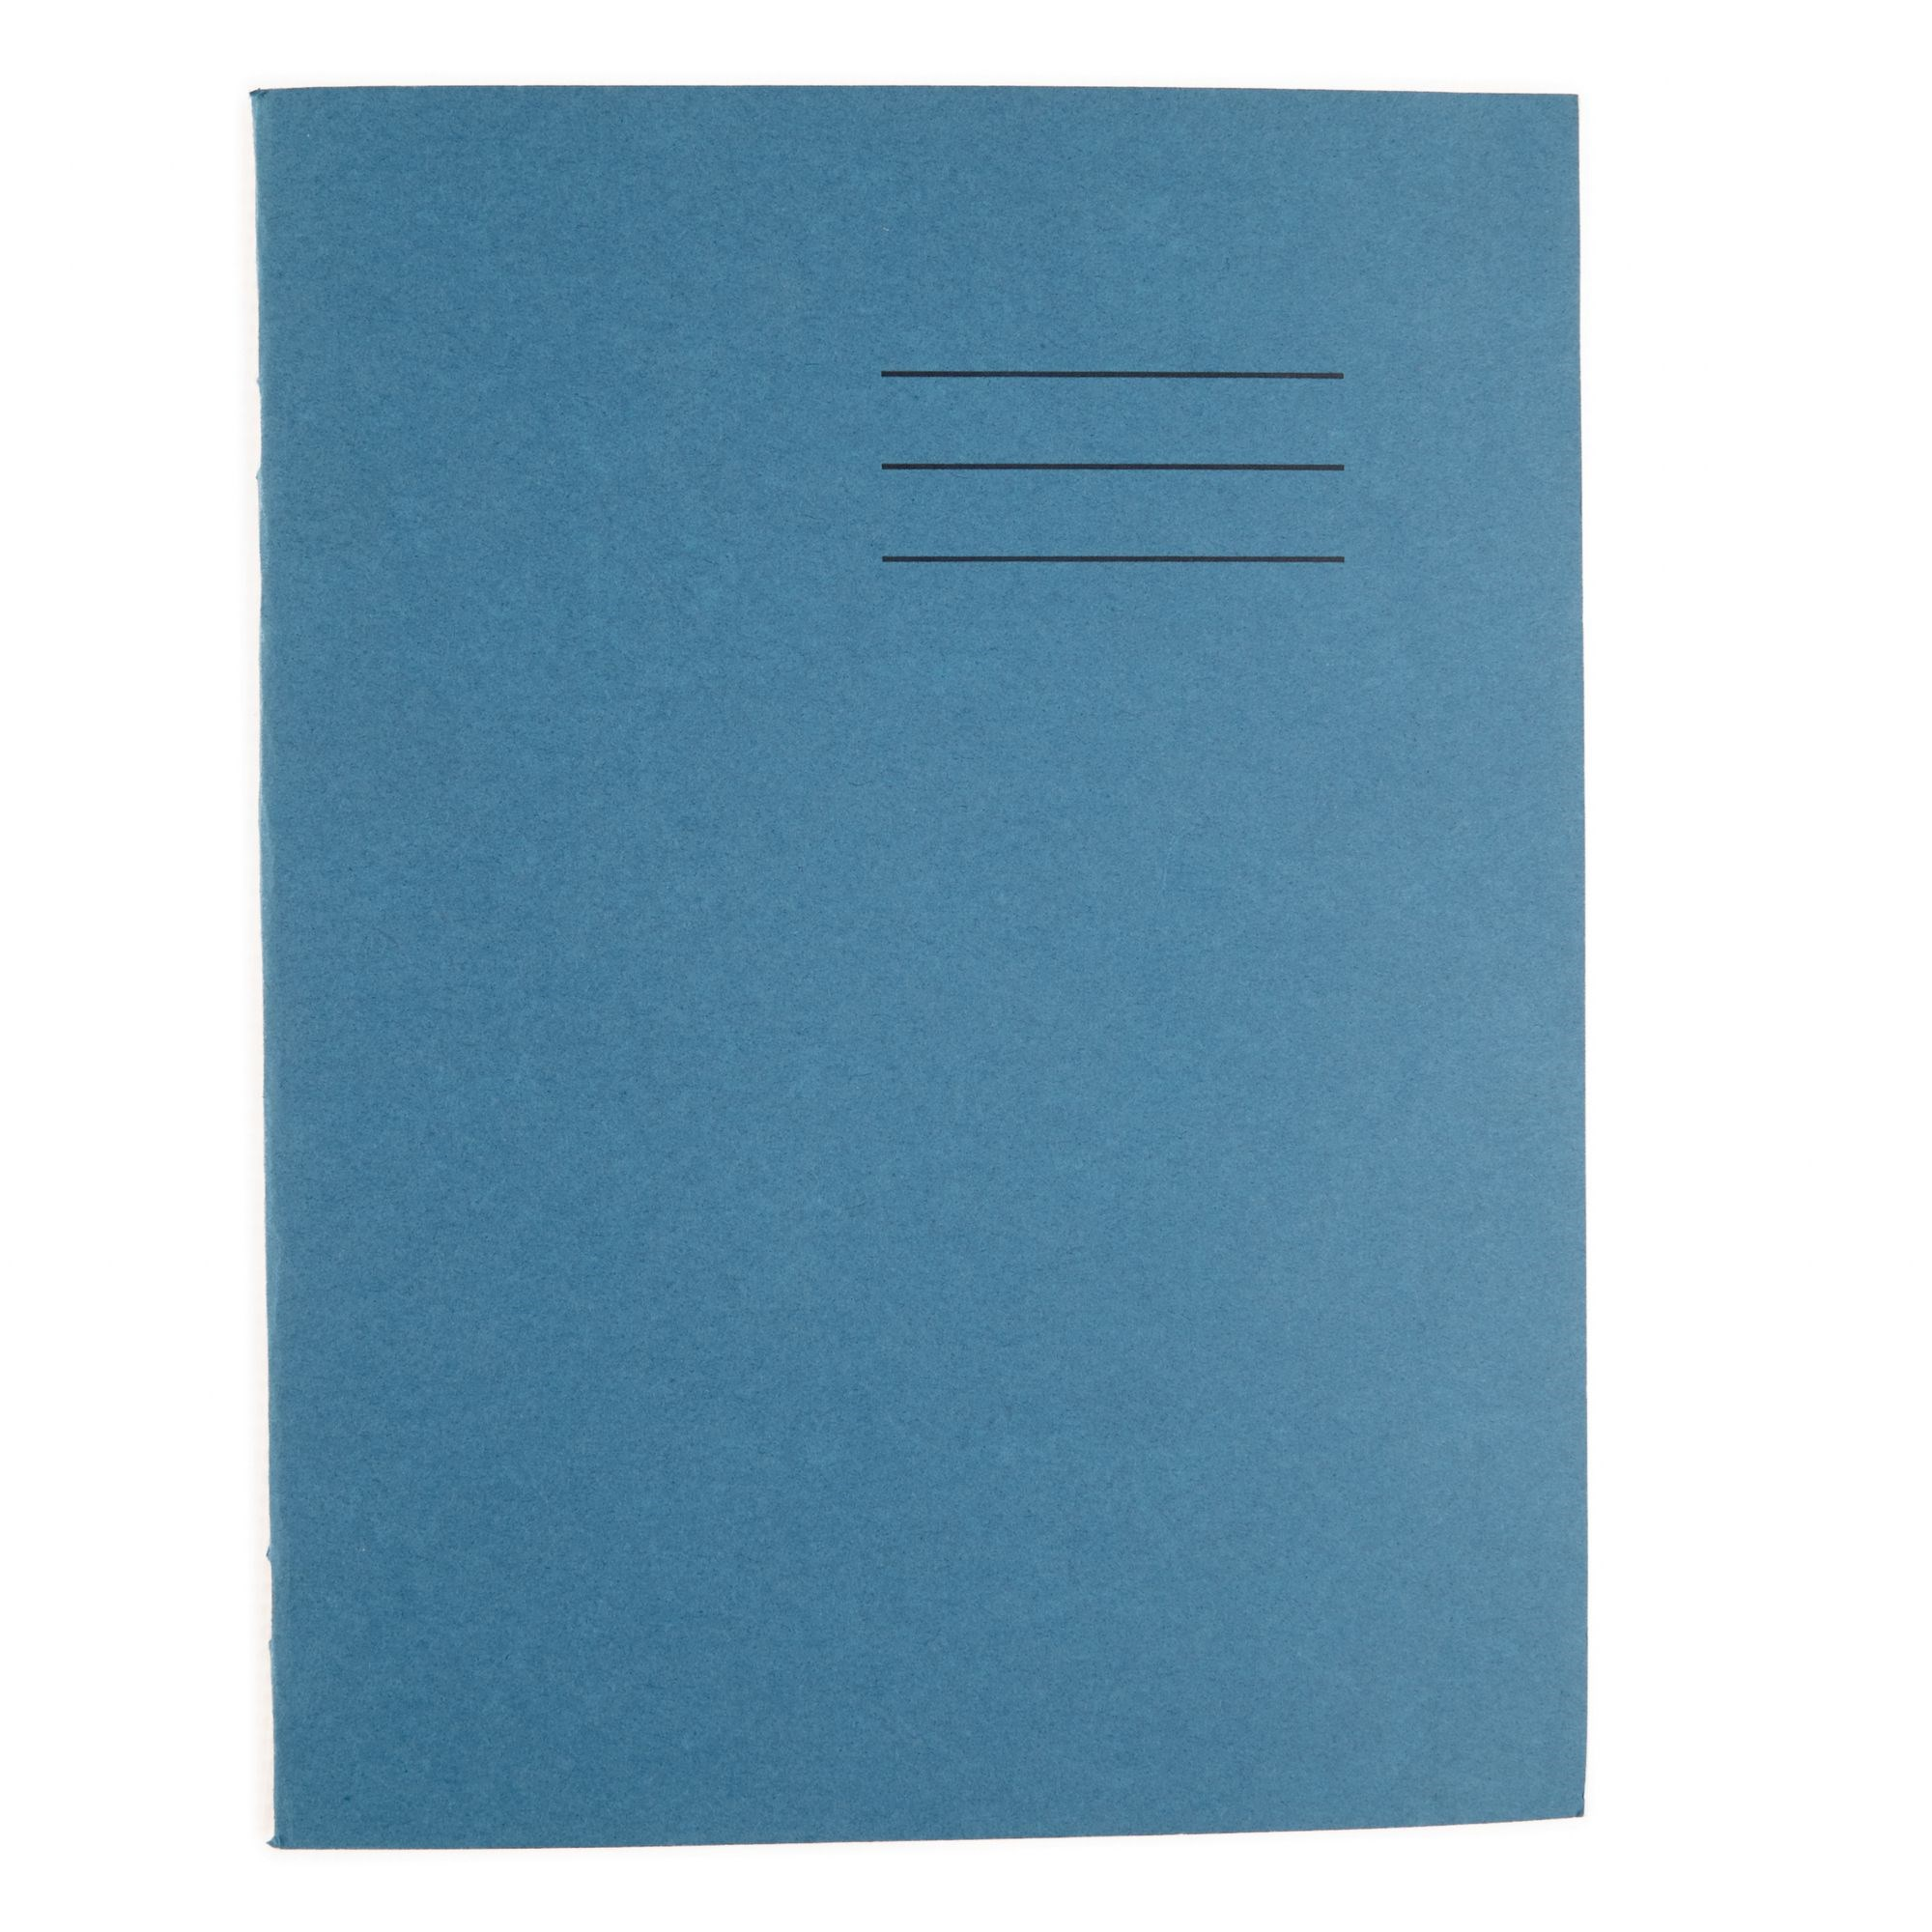 A4 Exercise Book 80 Page 10mm Squared Light Blue (Pack of 50)